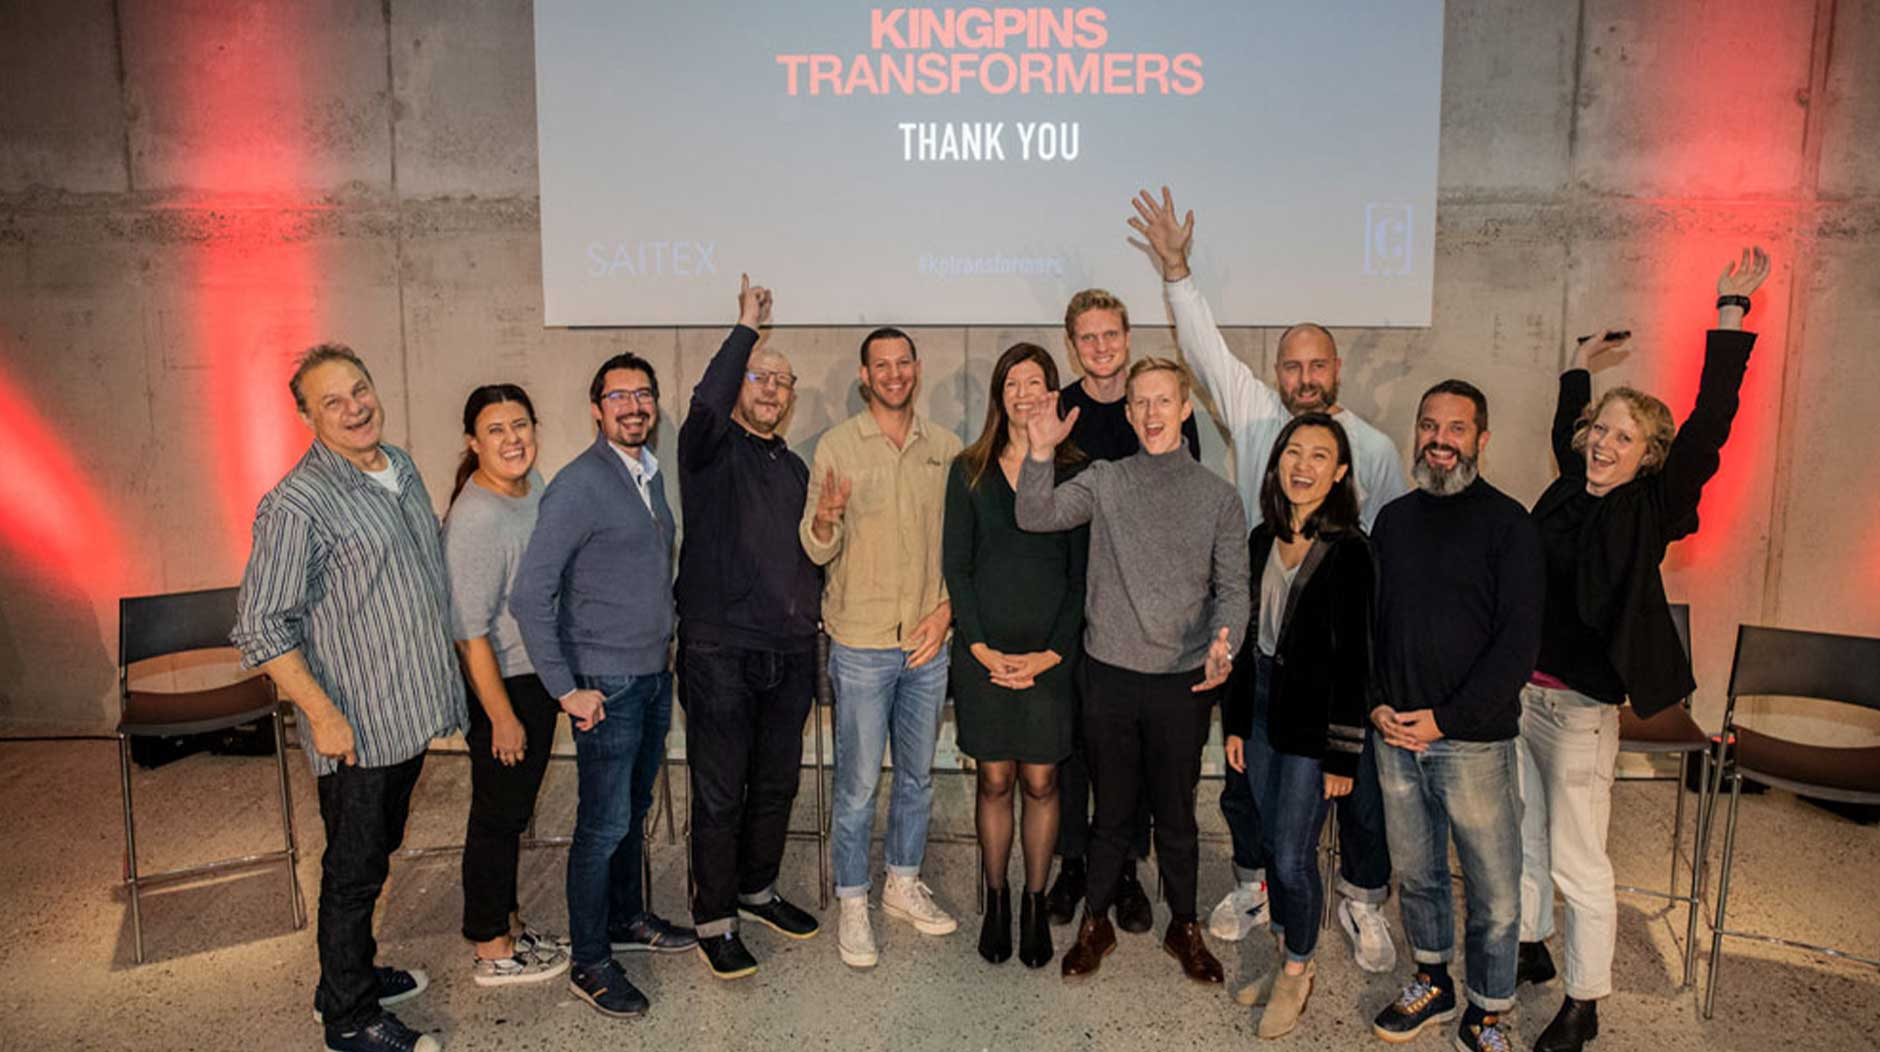 Speakers group photo at Kingpins Transformers event